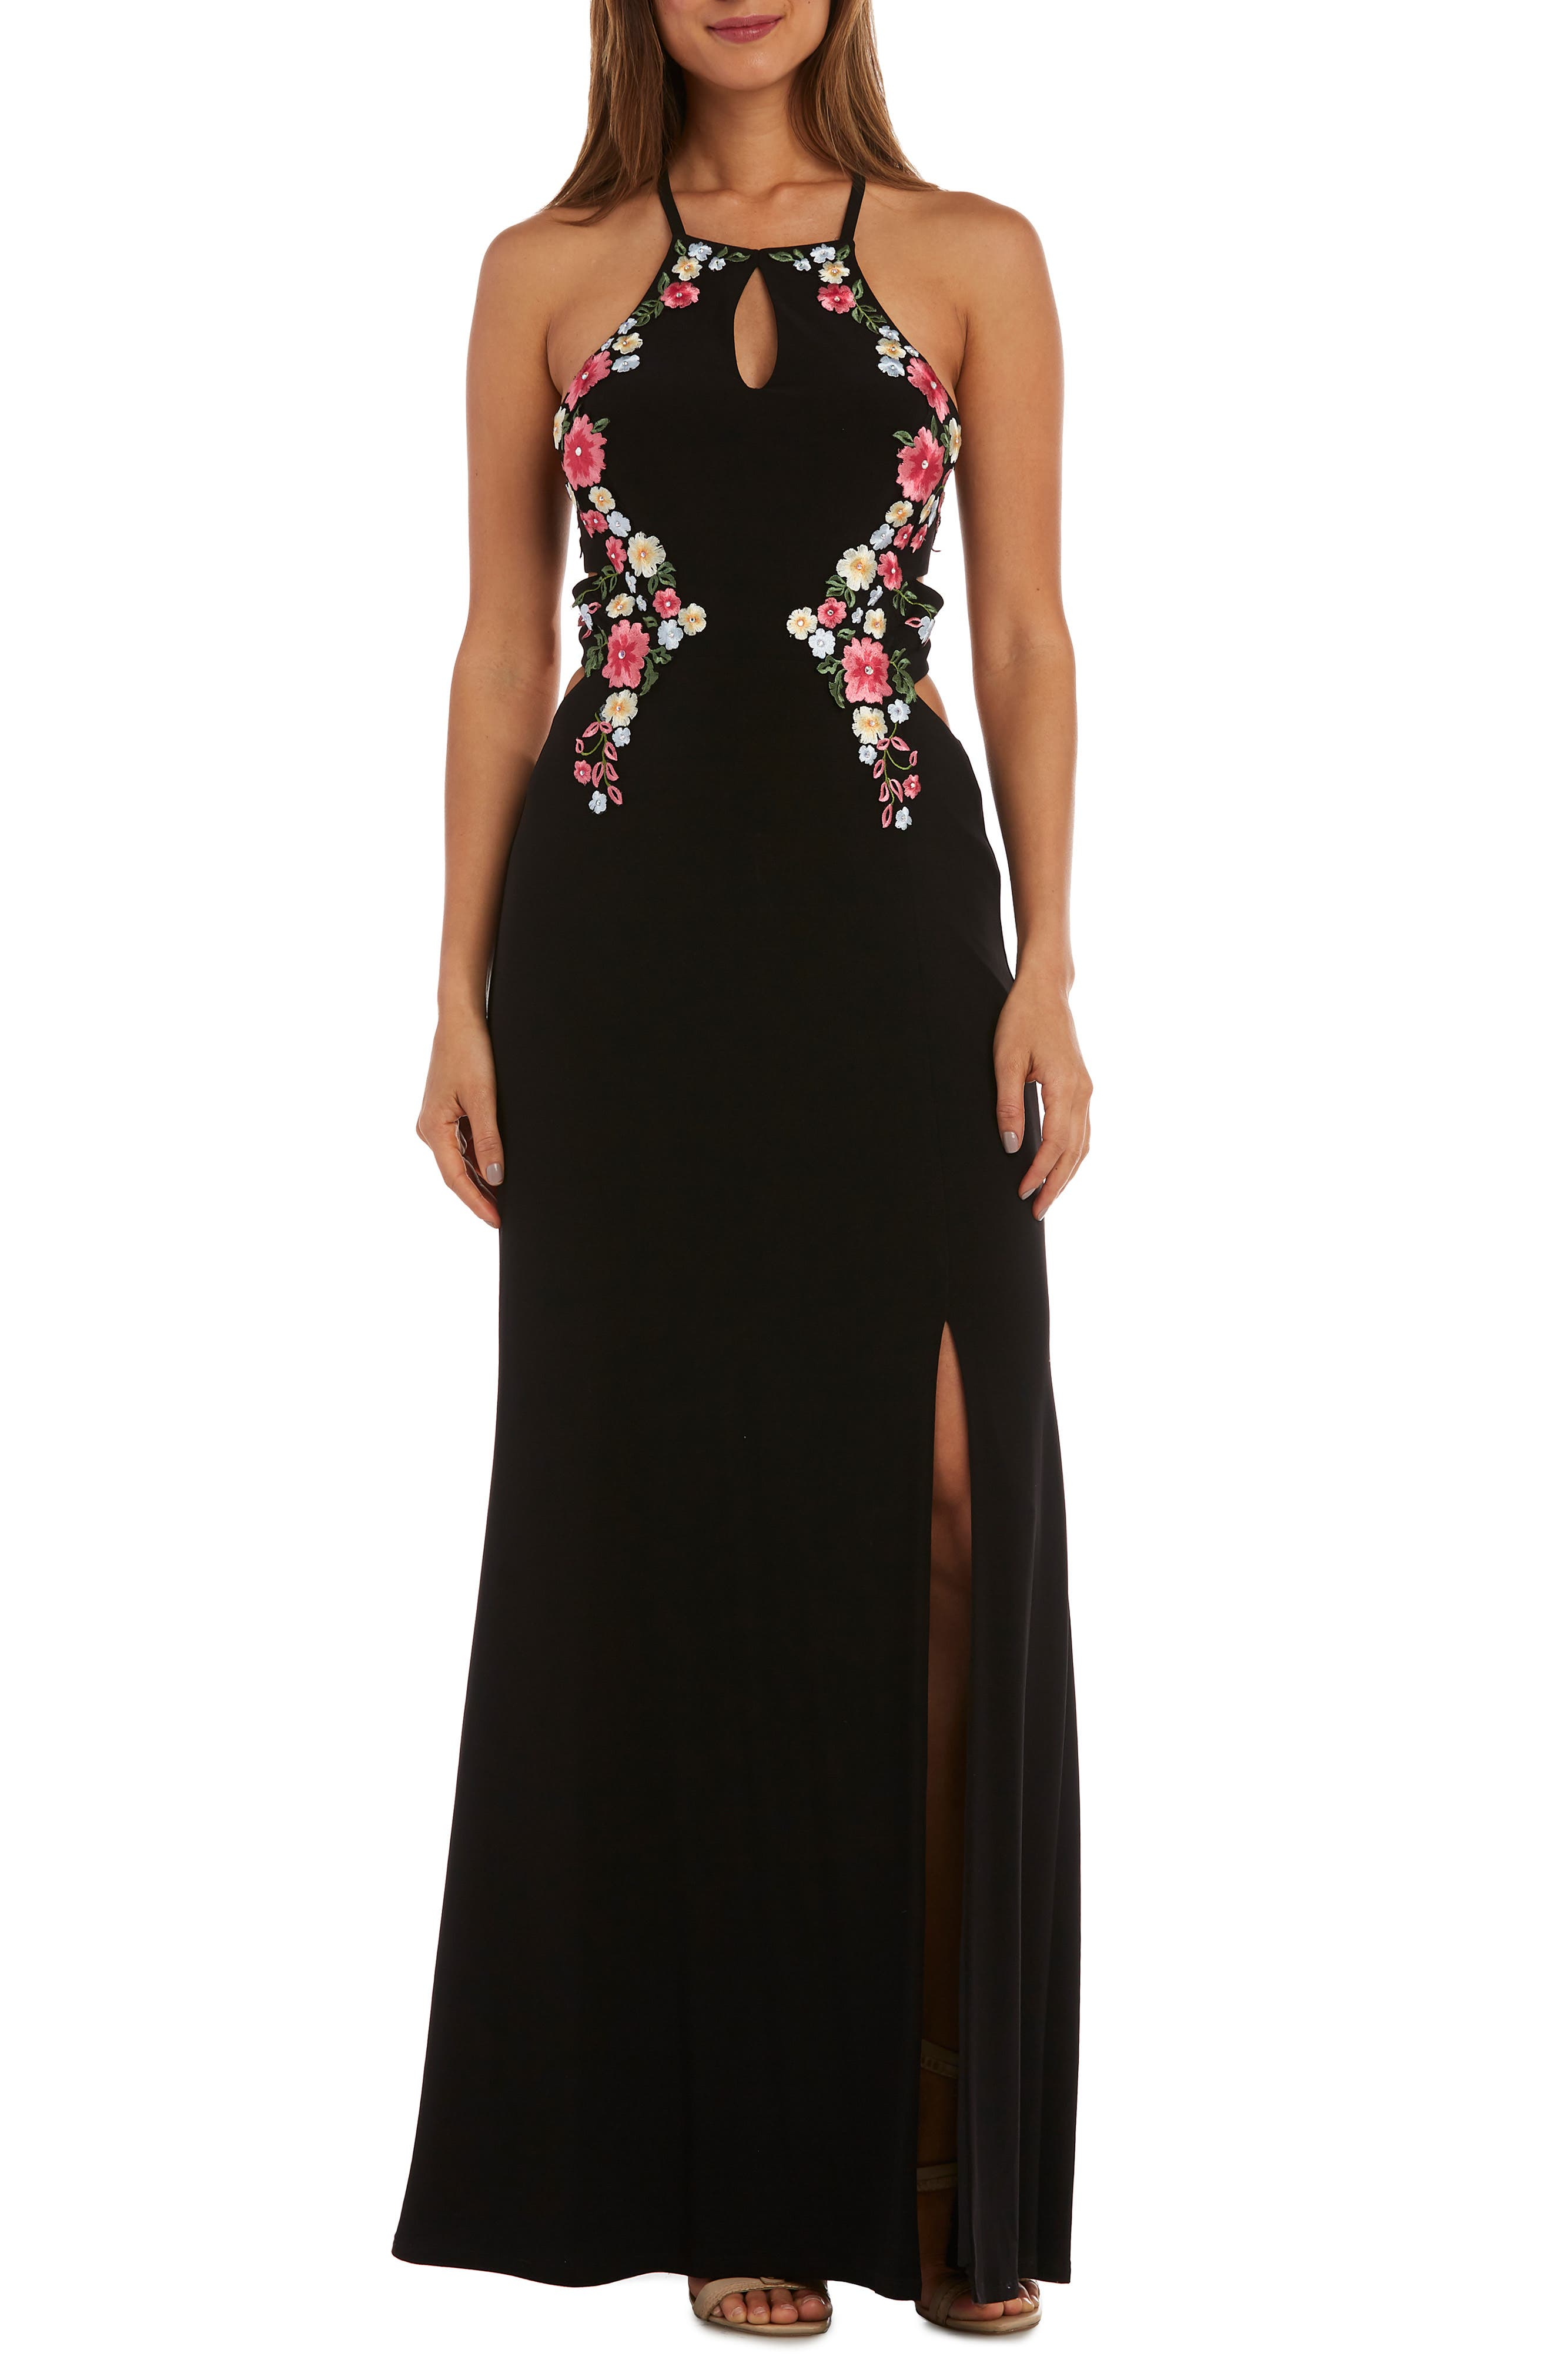 Morgan & Co. Lace-Up Back Halter Neck Evening Gown, Black